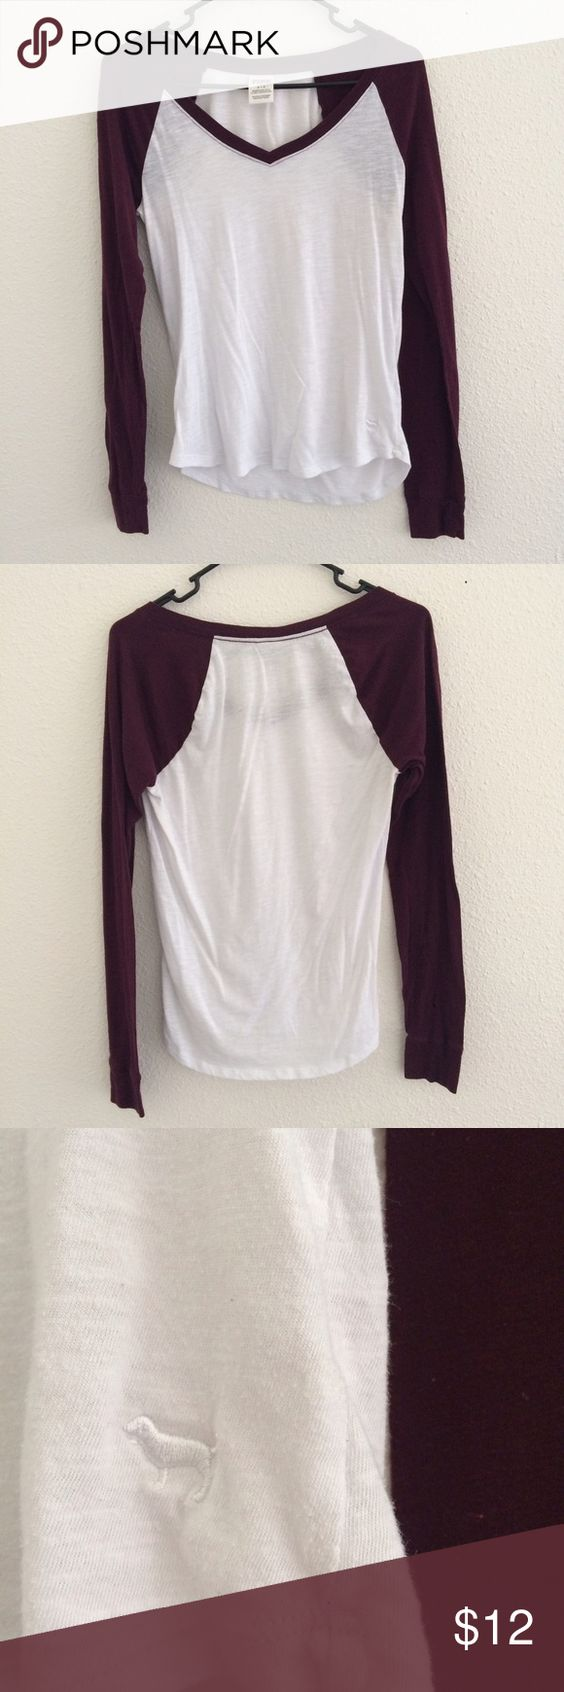 PINK Baseball Tee Victoria's Secret Pink baseball tee. Super cute and feminine cut with the v-neck. Maroon sleeves. In perfect condition with no rips, tears, or stains. Bundle & save. 😊 PINK Victoria's Secret Tops Tees - Long Sleeve